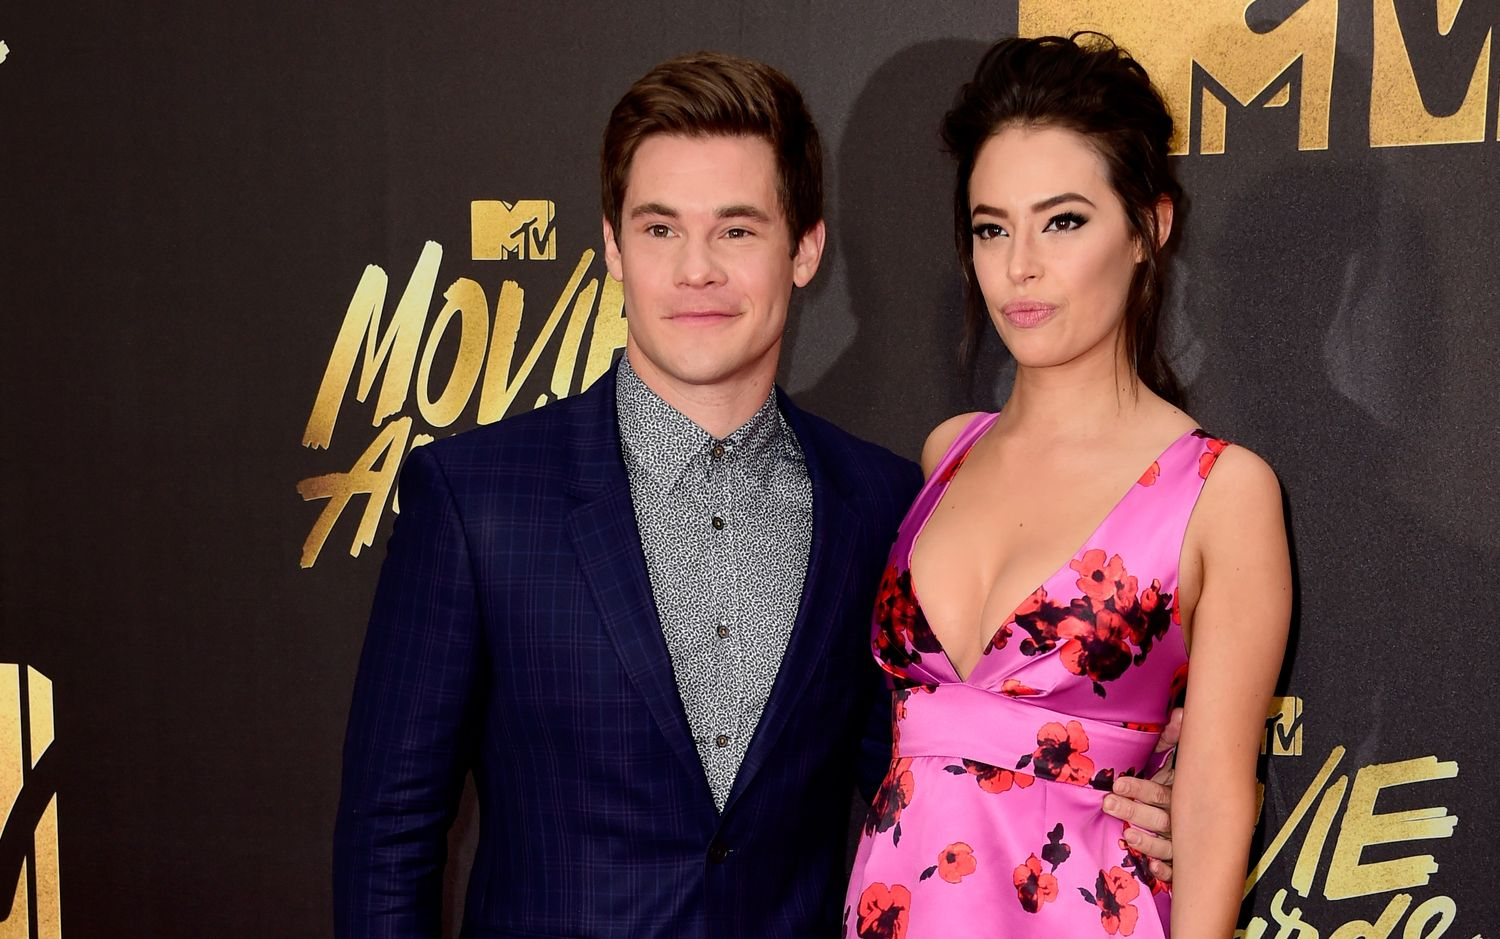 BURBANK, CALIFORNIA - APRIL 09: Actors Adam DeVine and Chloe Bridges attend the 2016 MTV Movie Awards at Warner Bros. Studios on April 9, 2016 in Burbank, California. MTV Movie Awards airs April 10, 2016 at 8pm ET/PT. (Photo by Frazer Harrison/Getty Images)